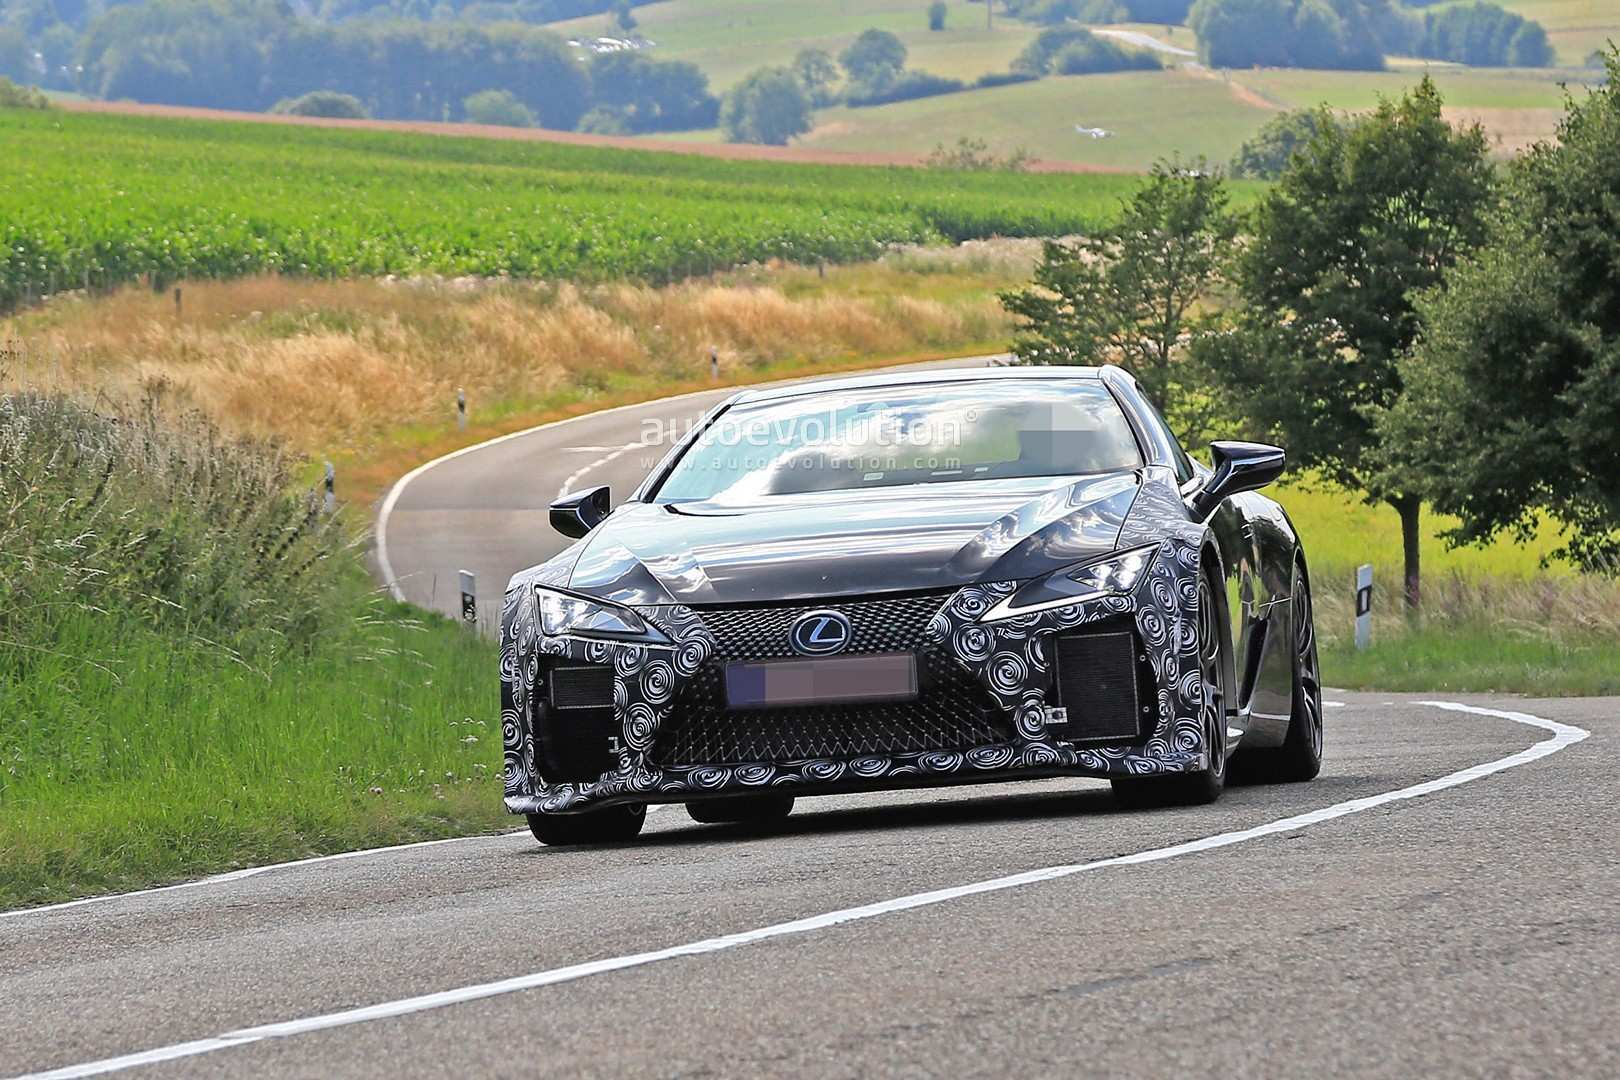 84 New 2020 Lexus Lc Price and Review with 2020 Lexus Lc